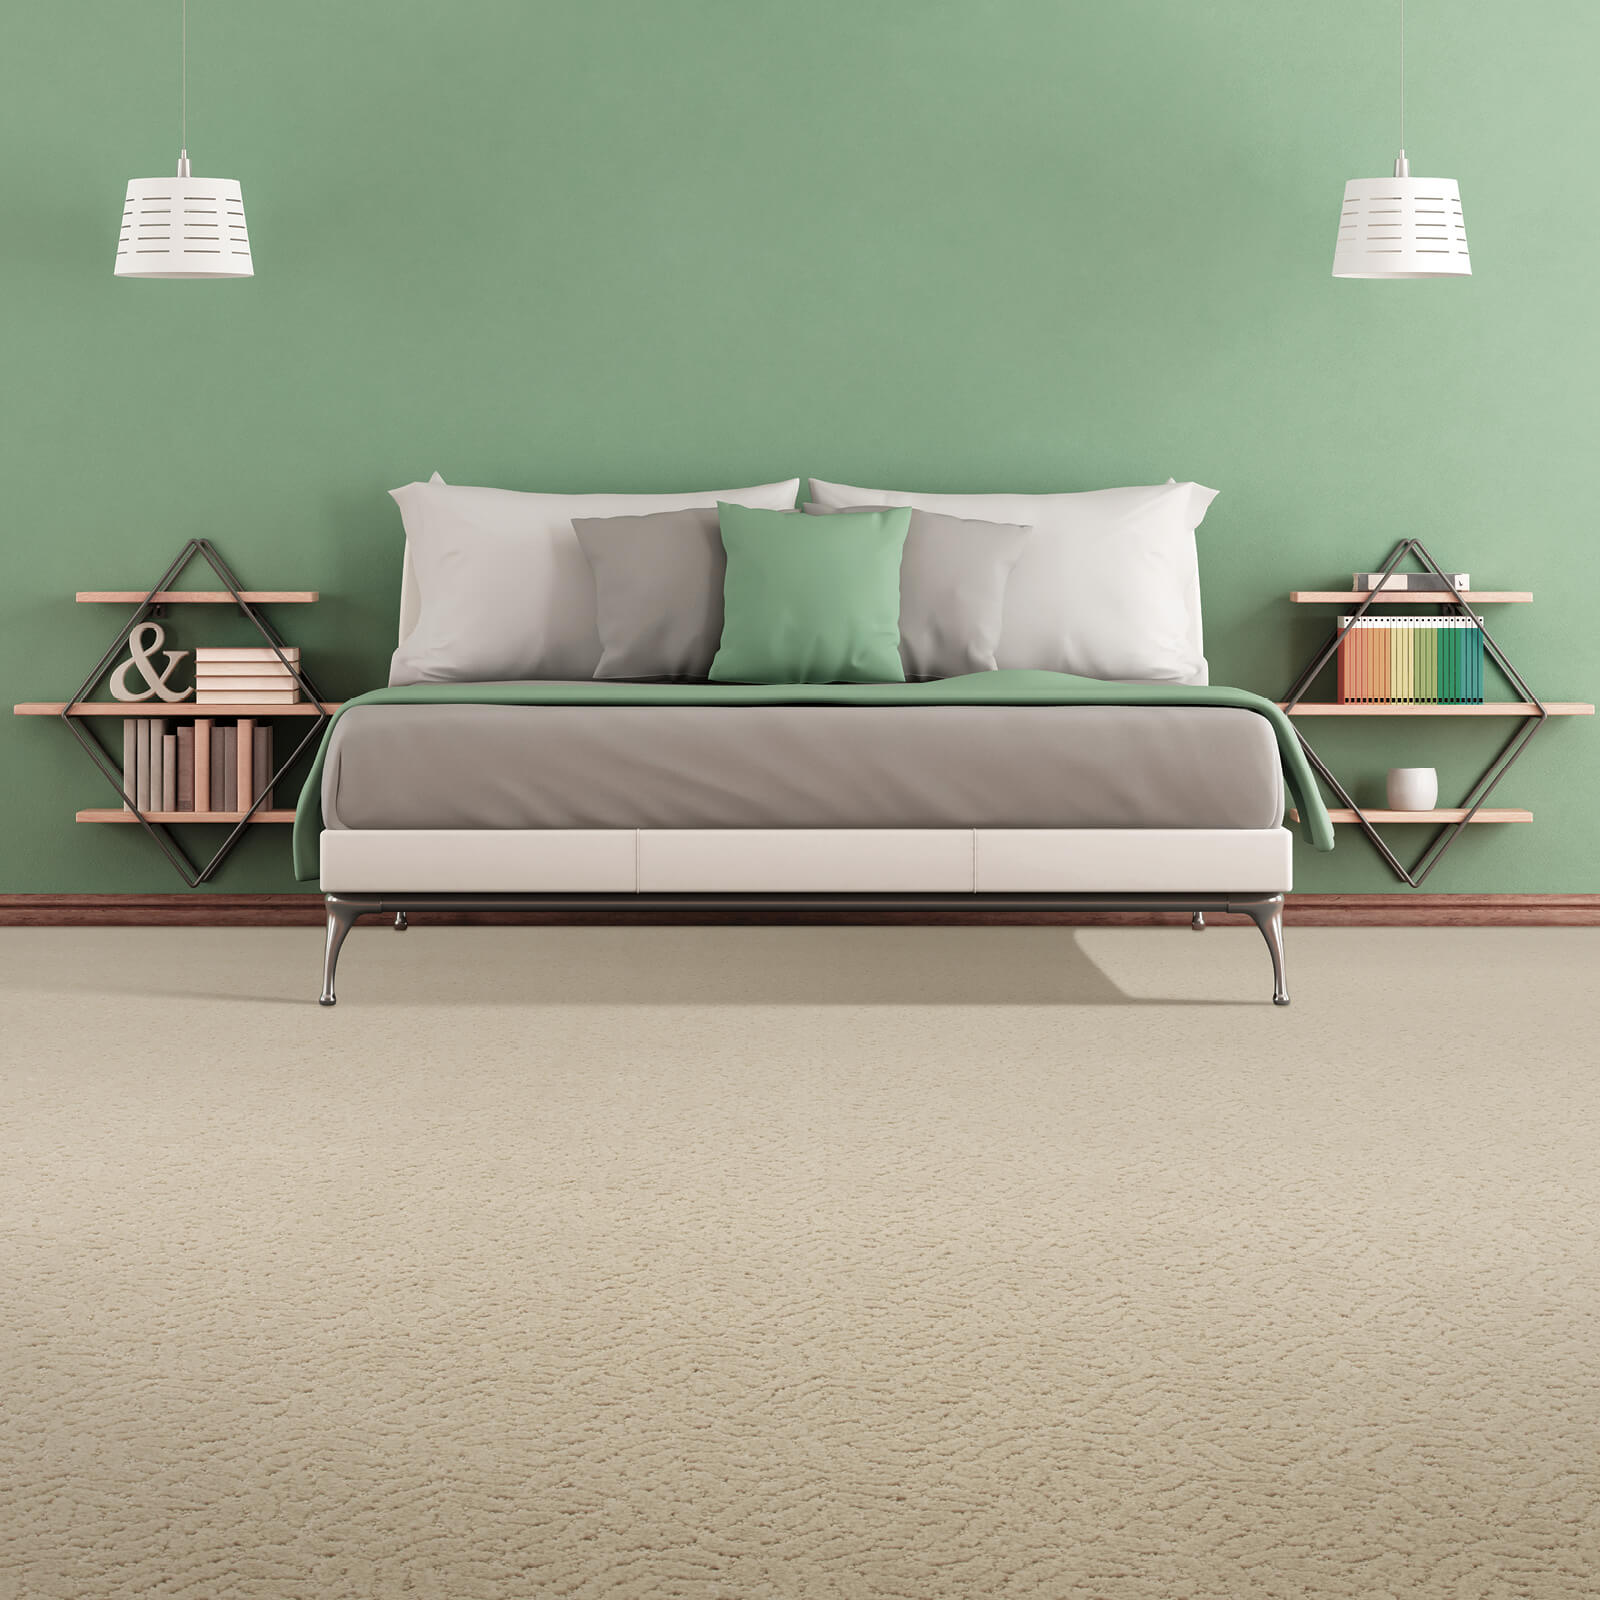 Green colorwall | We'll Floor You